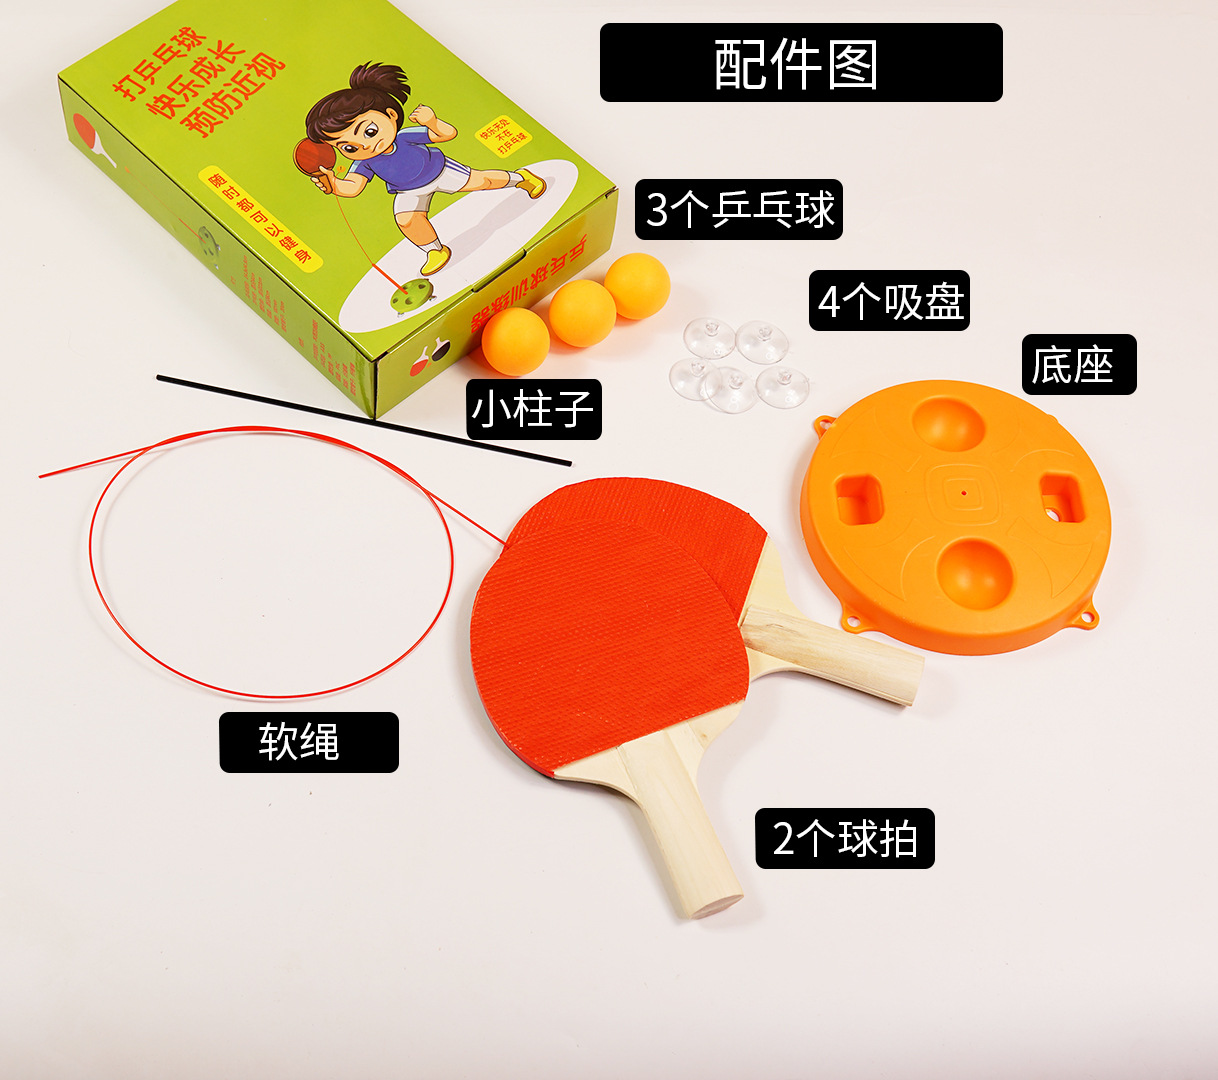 8.22 Ping Pong Training Device [Wood Rackets]